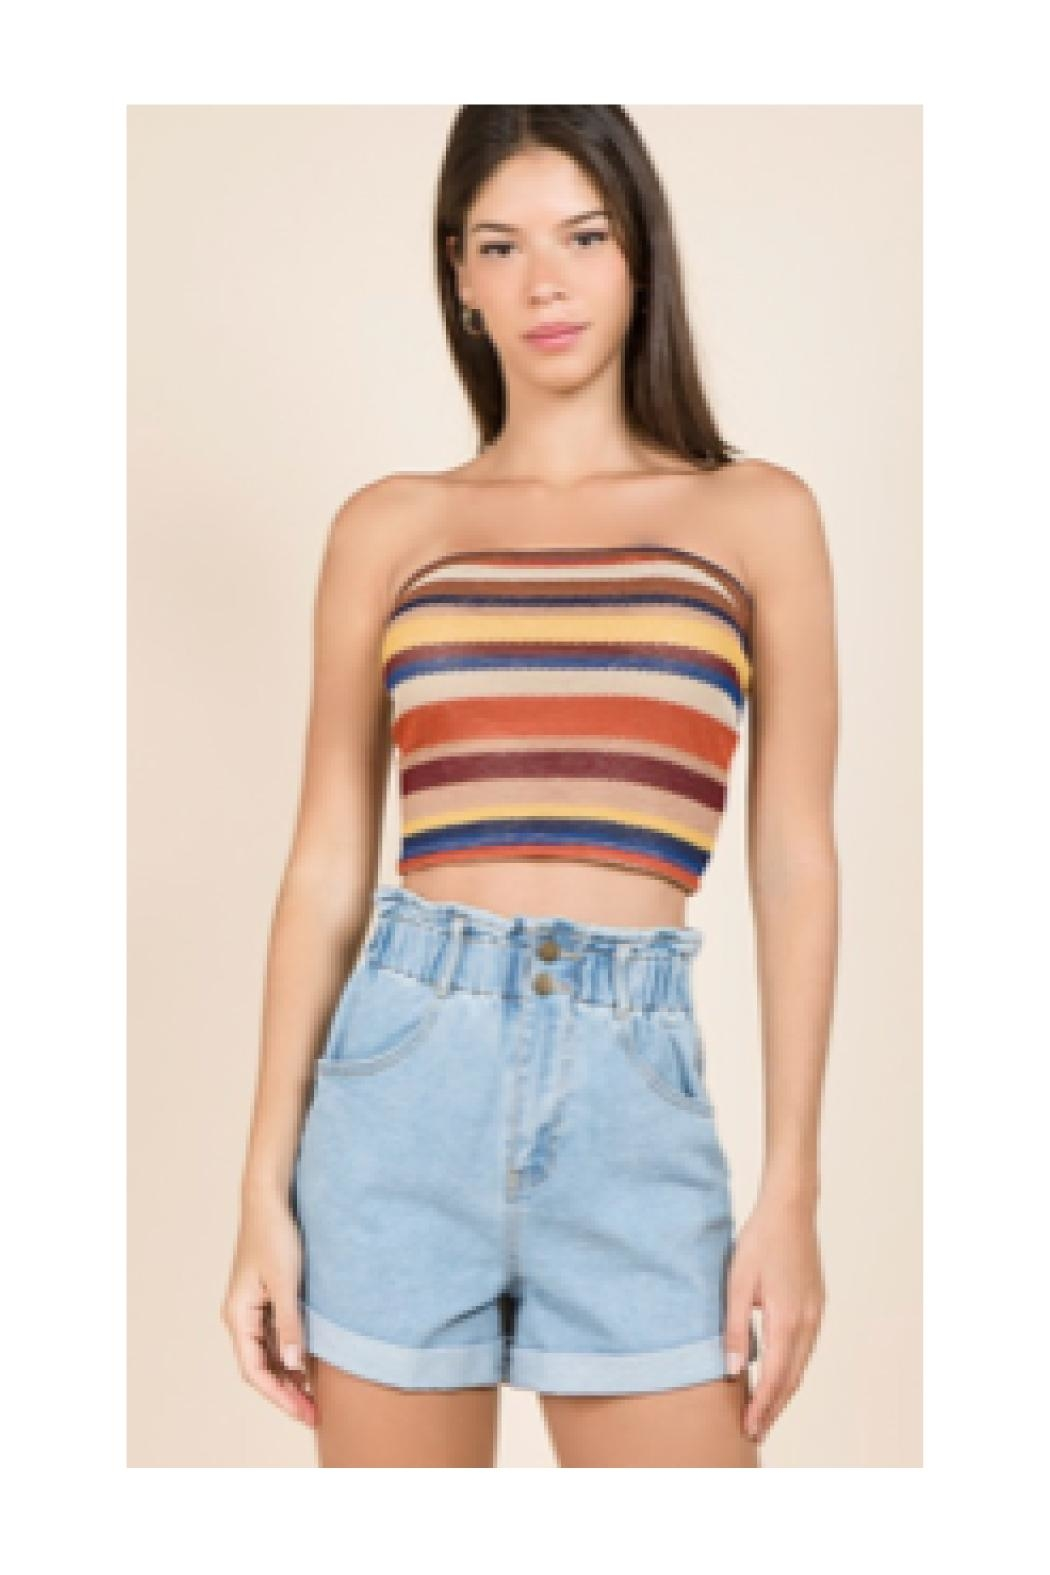 Polly & Esther Rust Multicolor Tube-Top - Main Image